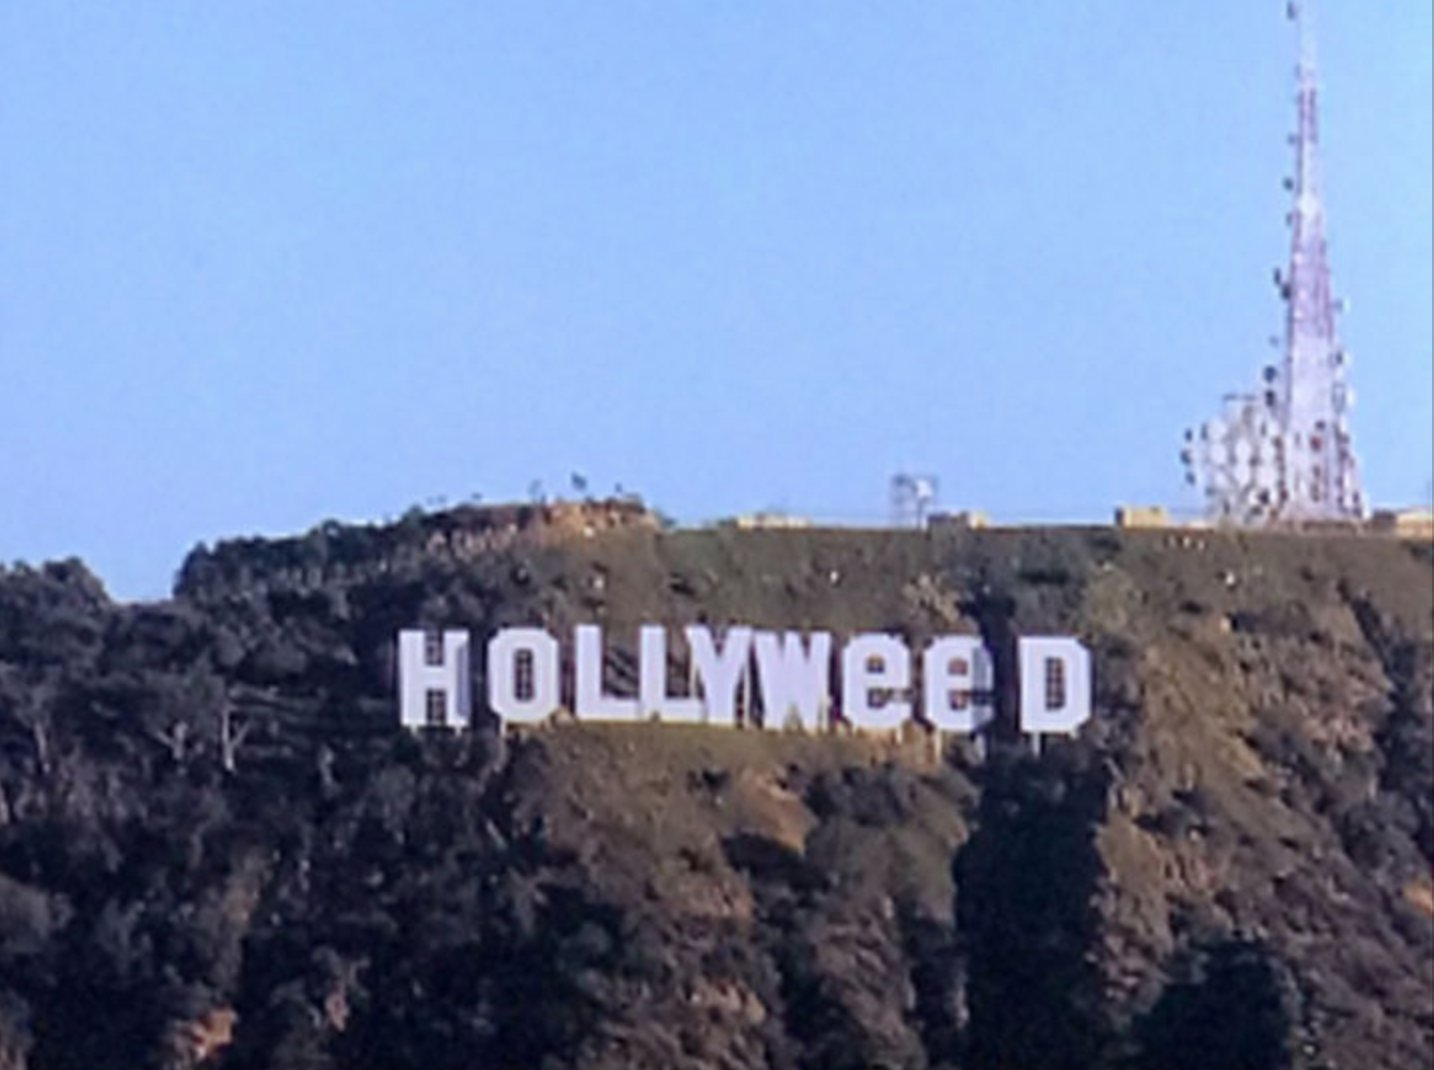 The Hollywood sign was changed to say Hollyweed today https://t.co/NSWmbgz9aP